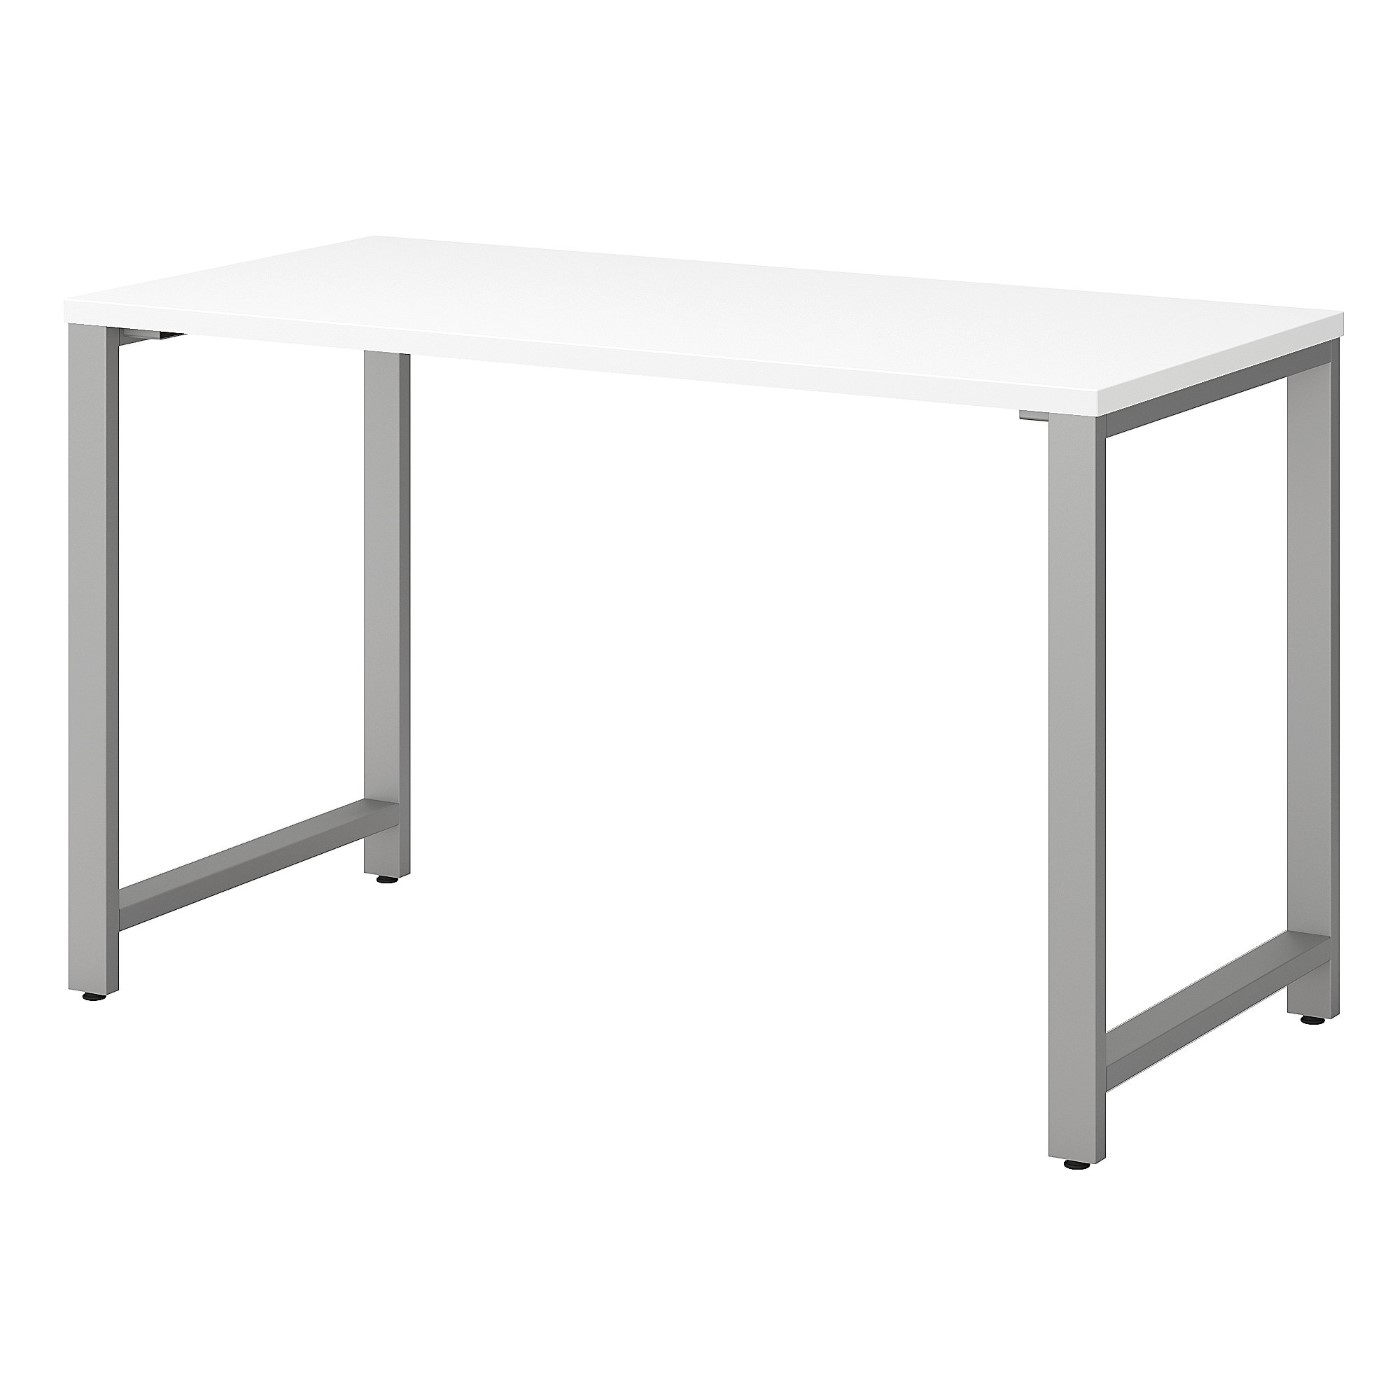 BUSH BUSINESS FURNITURE 400 SERIES 48W X 24D TABLE DESK WITH METAL LEGS. FREE SHIPPING SALE DEDUCT 10% MORE ENTER '10percent' IN COUPON CODE BOX WHILE CHECKING OUT.